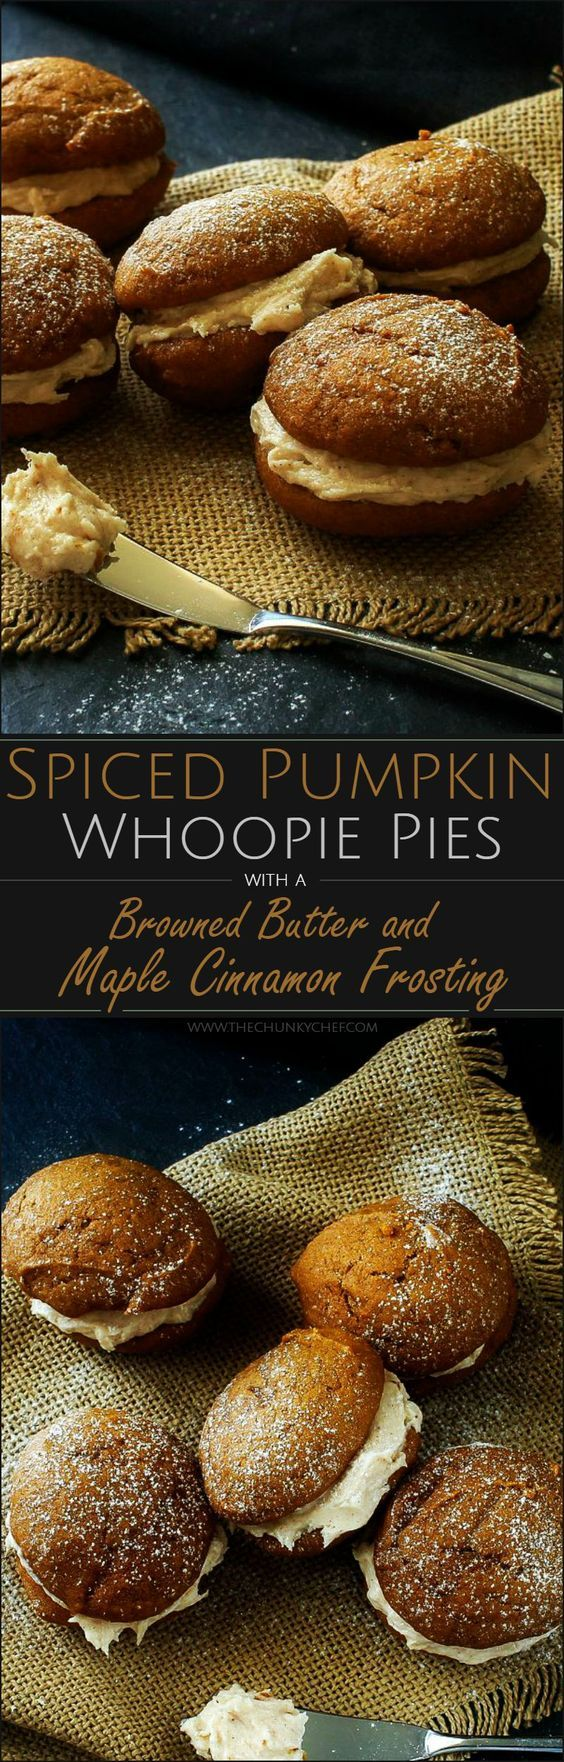 Spiced Pumpkin Whoopie Pies with Browned Butter and Maple Cinnamon Frosting Recipe | The Chunky Chef